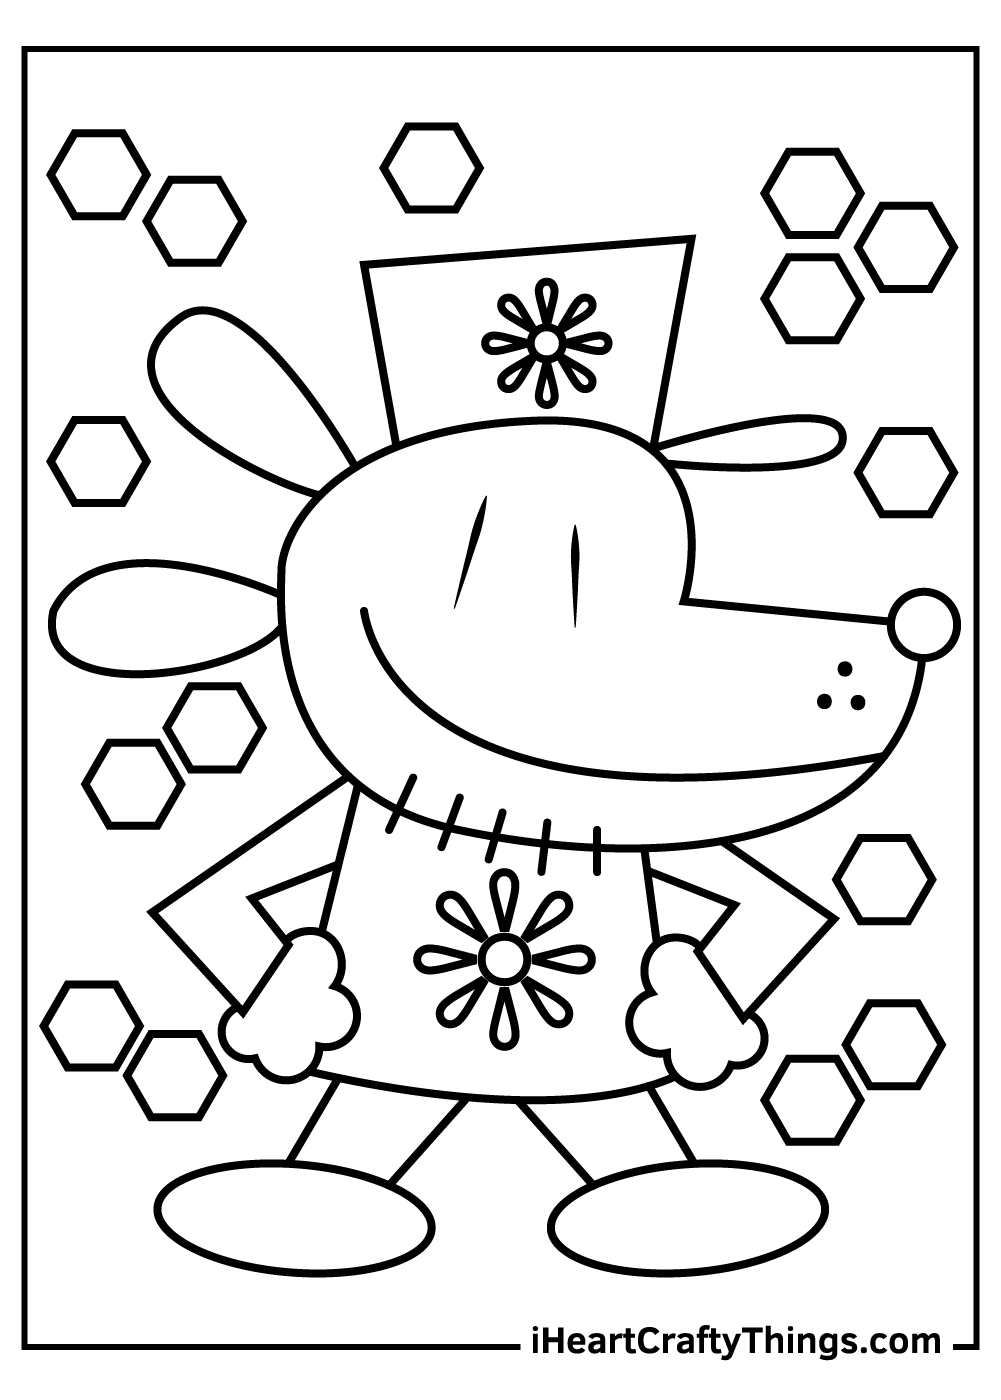 new simple dog man coloring pages free printables